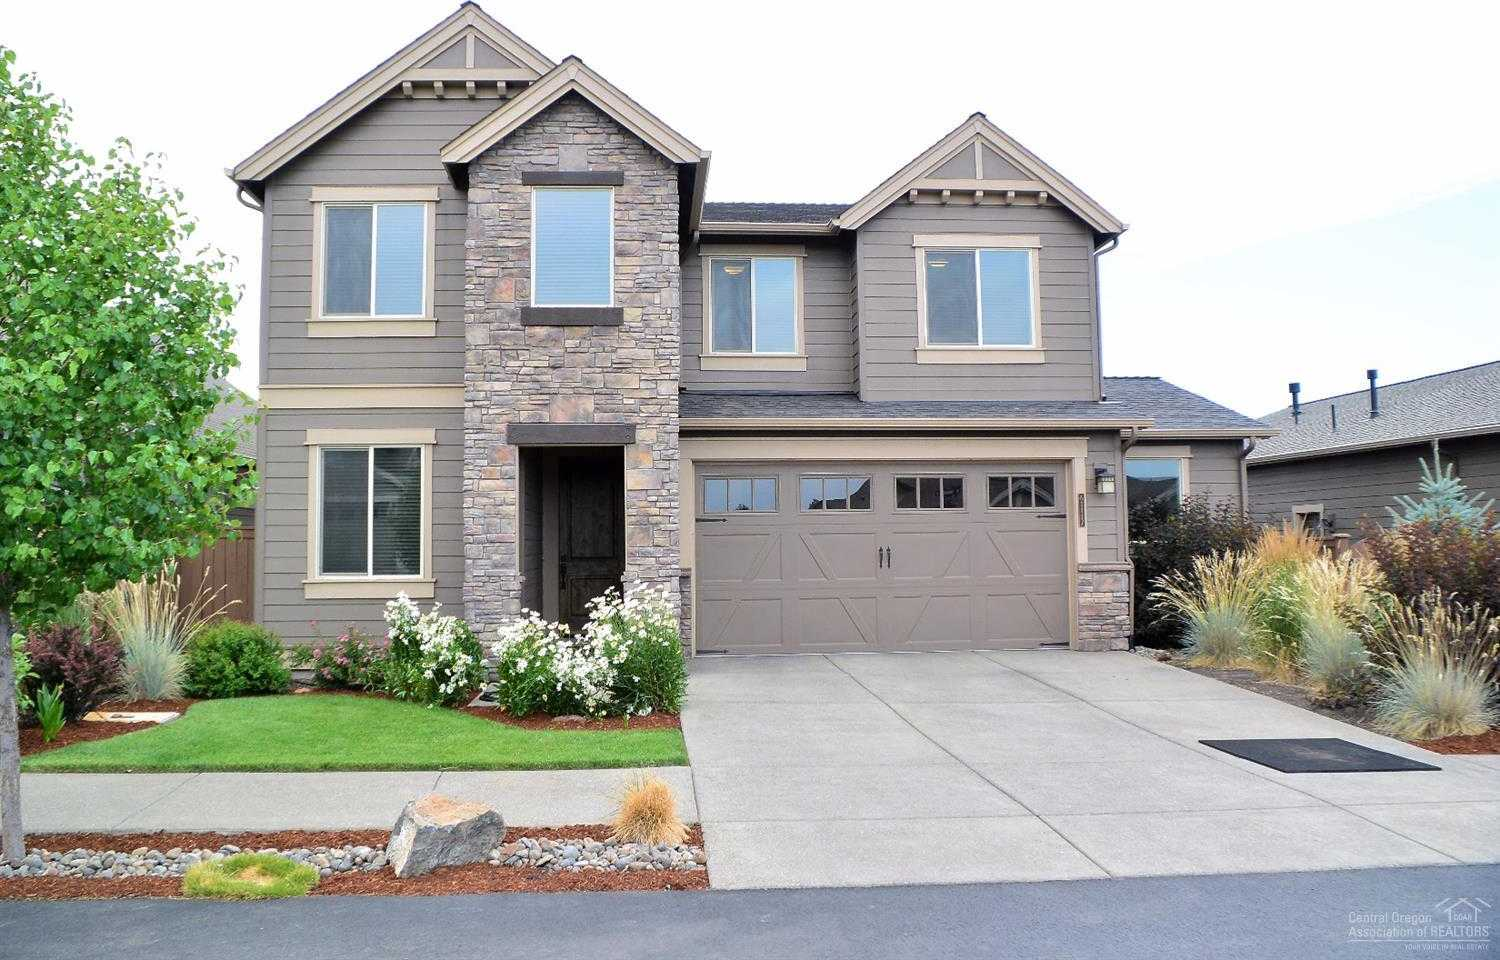 $530,000 - 4Br/3Ba -  for Sale in Bend